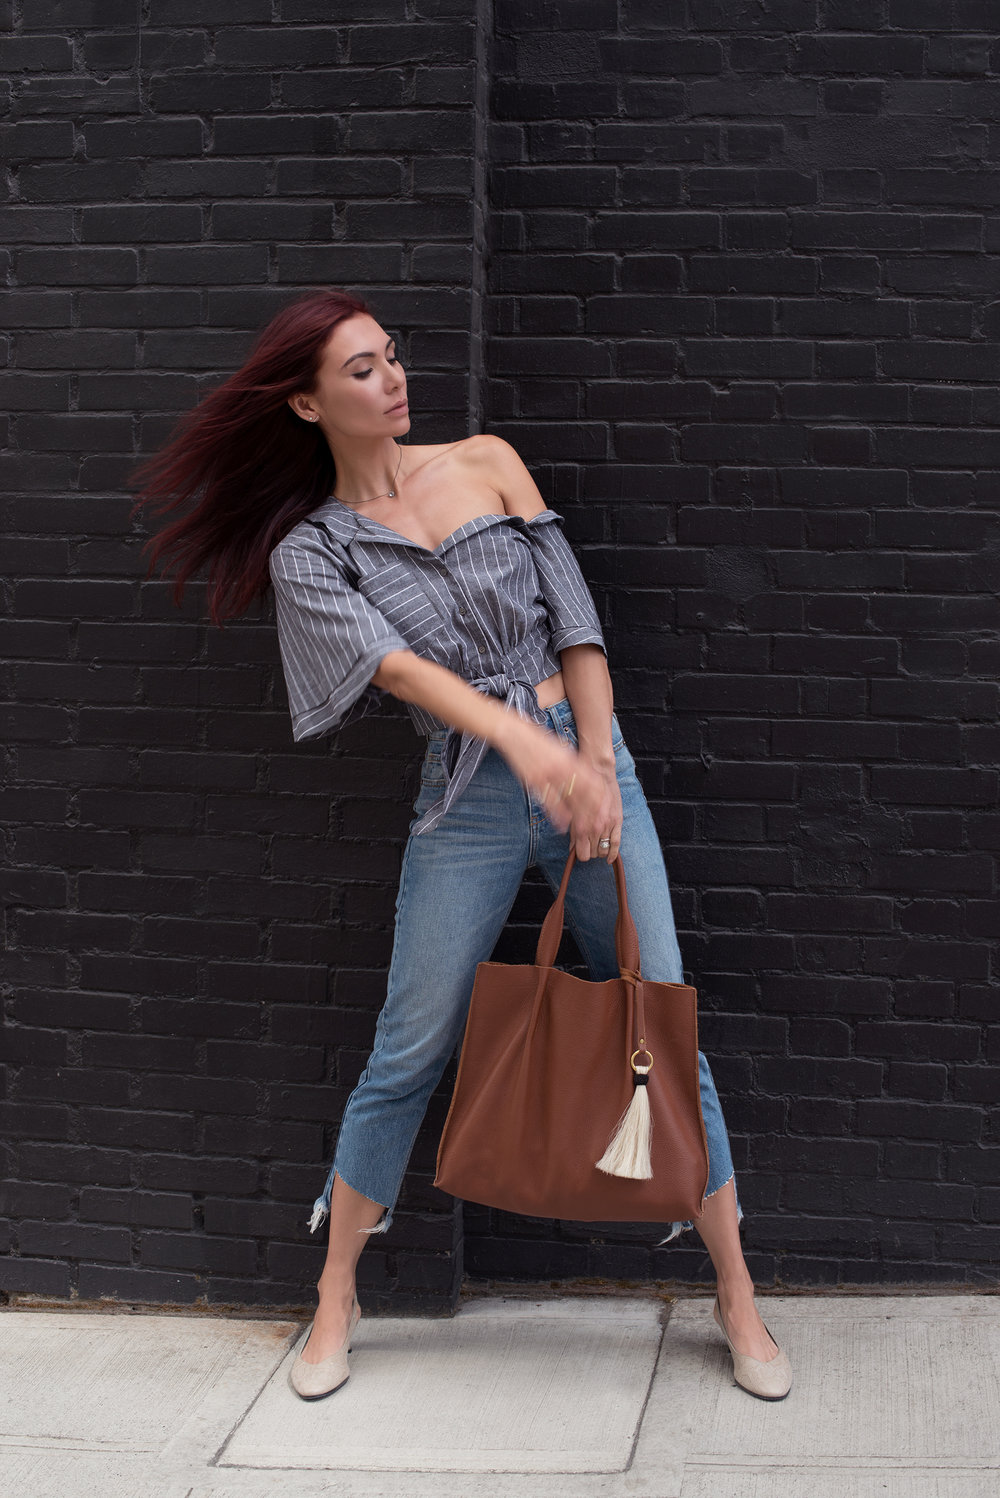 TOP / JEANS / SHOES (similar HERE) / BAG / NECKLACE /